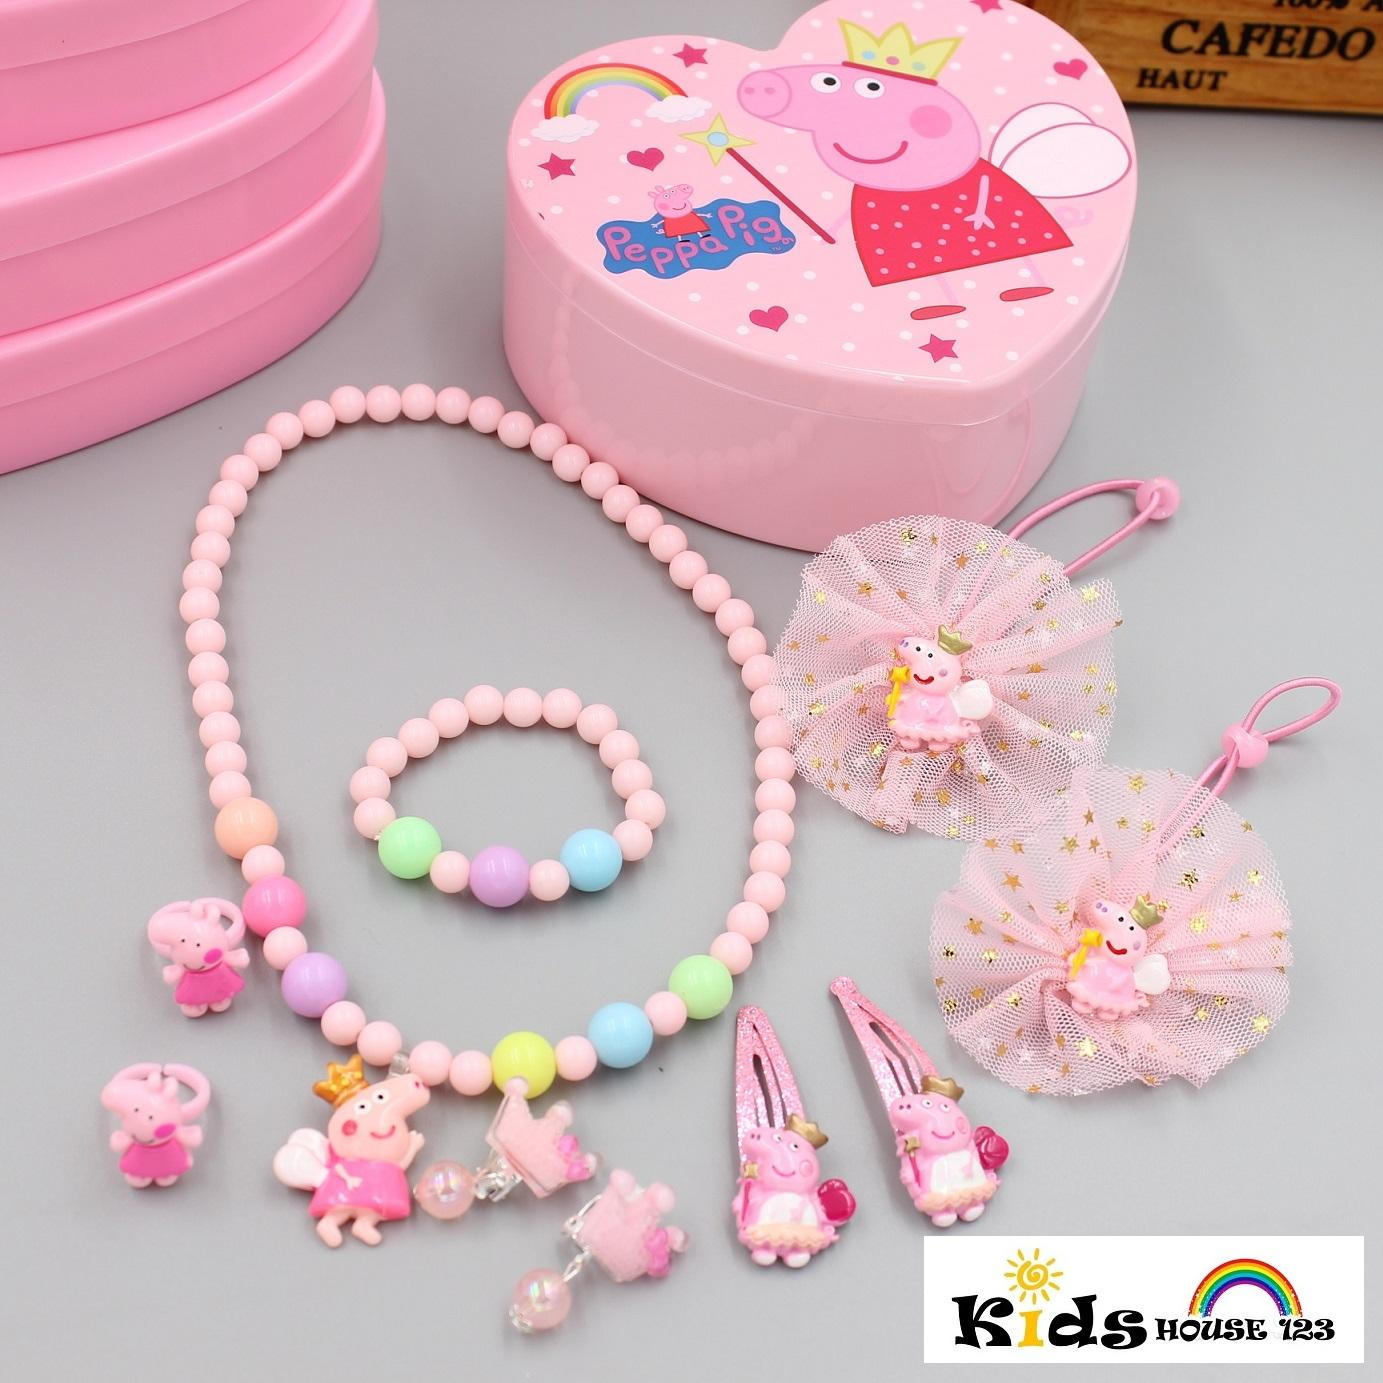 d98920950 Peppa Pig w Crown Jewelry Hair Accessories Gift Set for Baby Kids Children  Girl A010